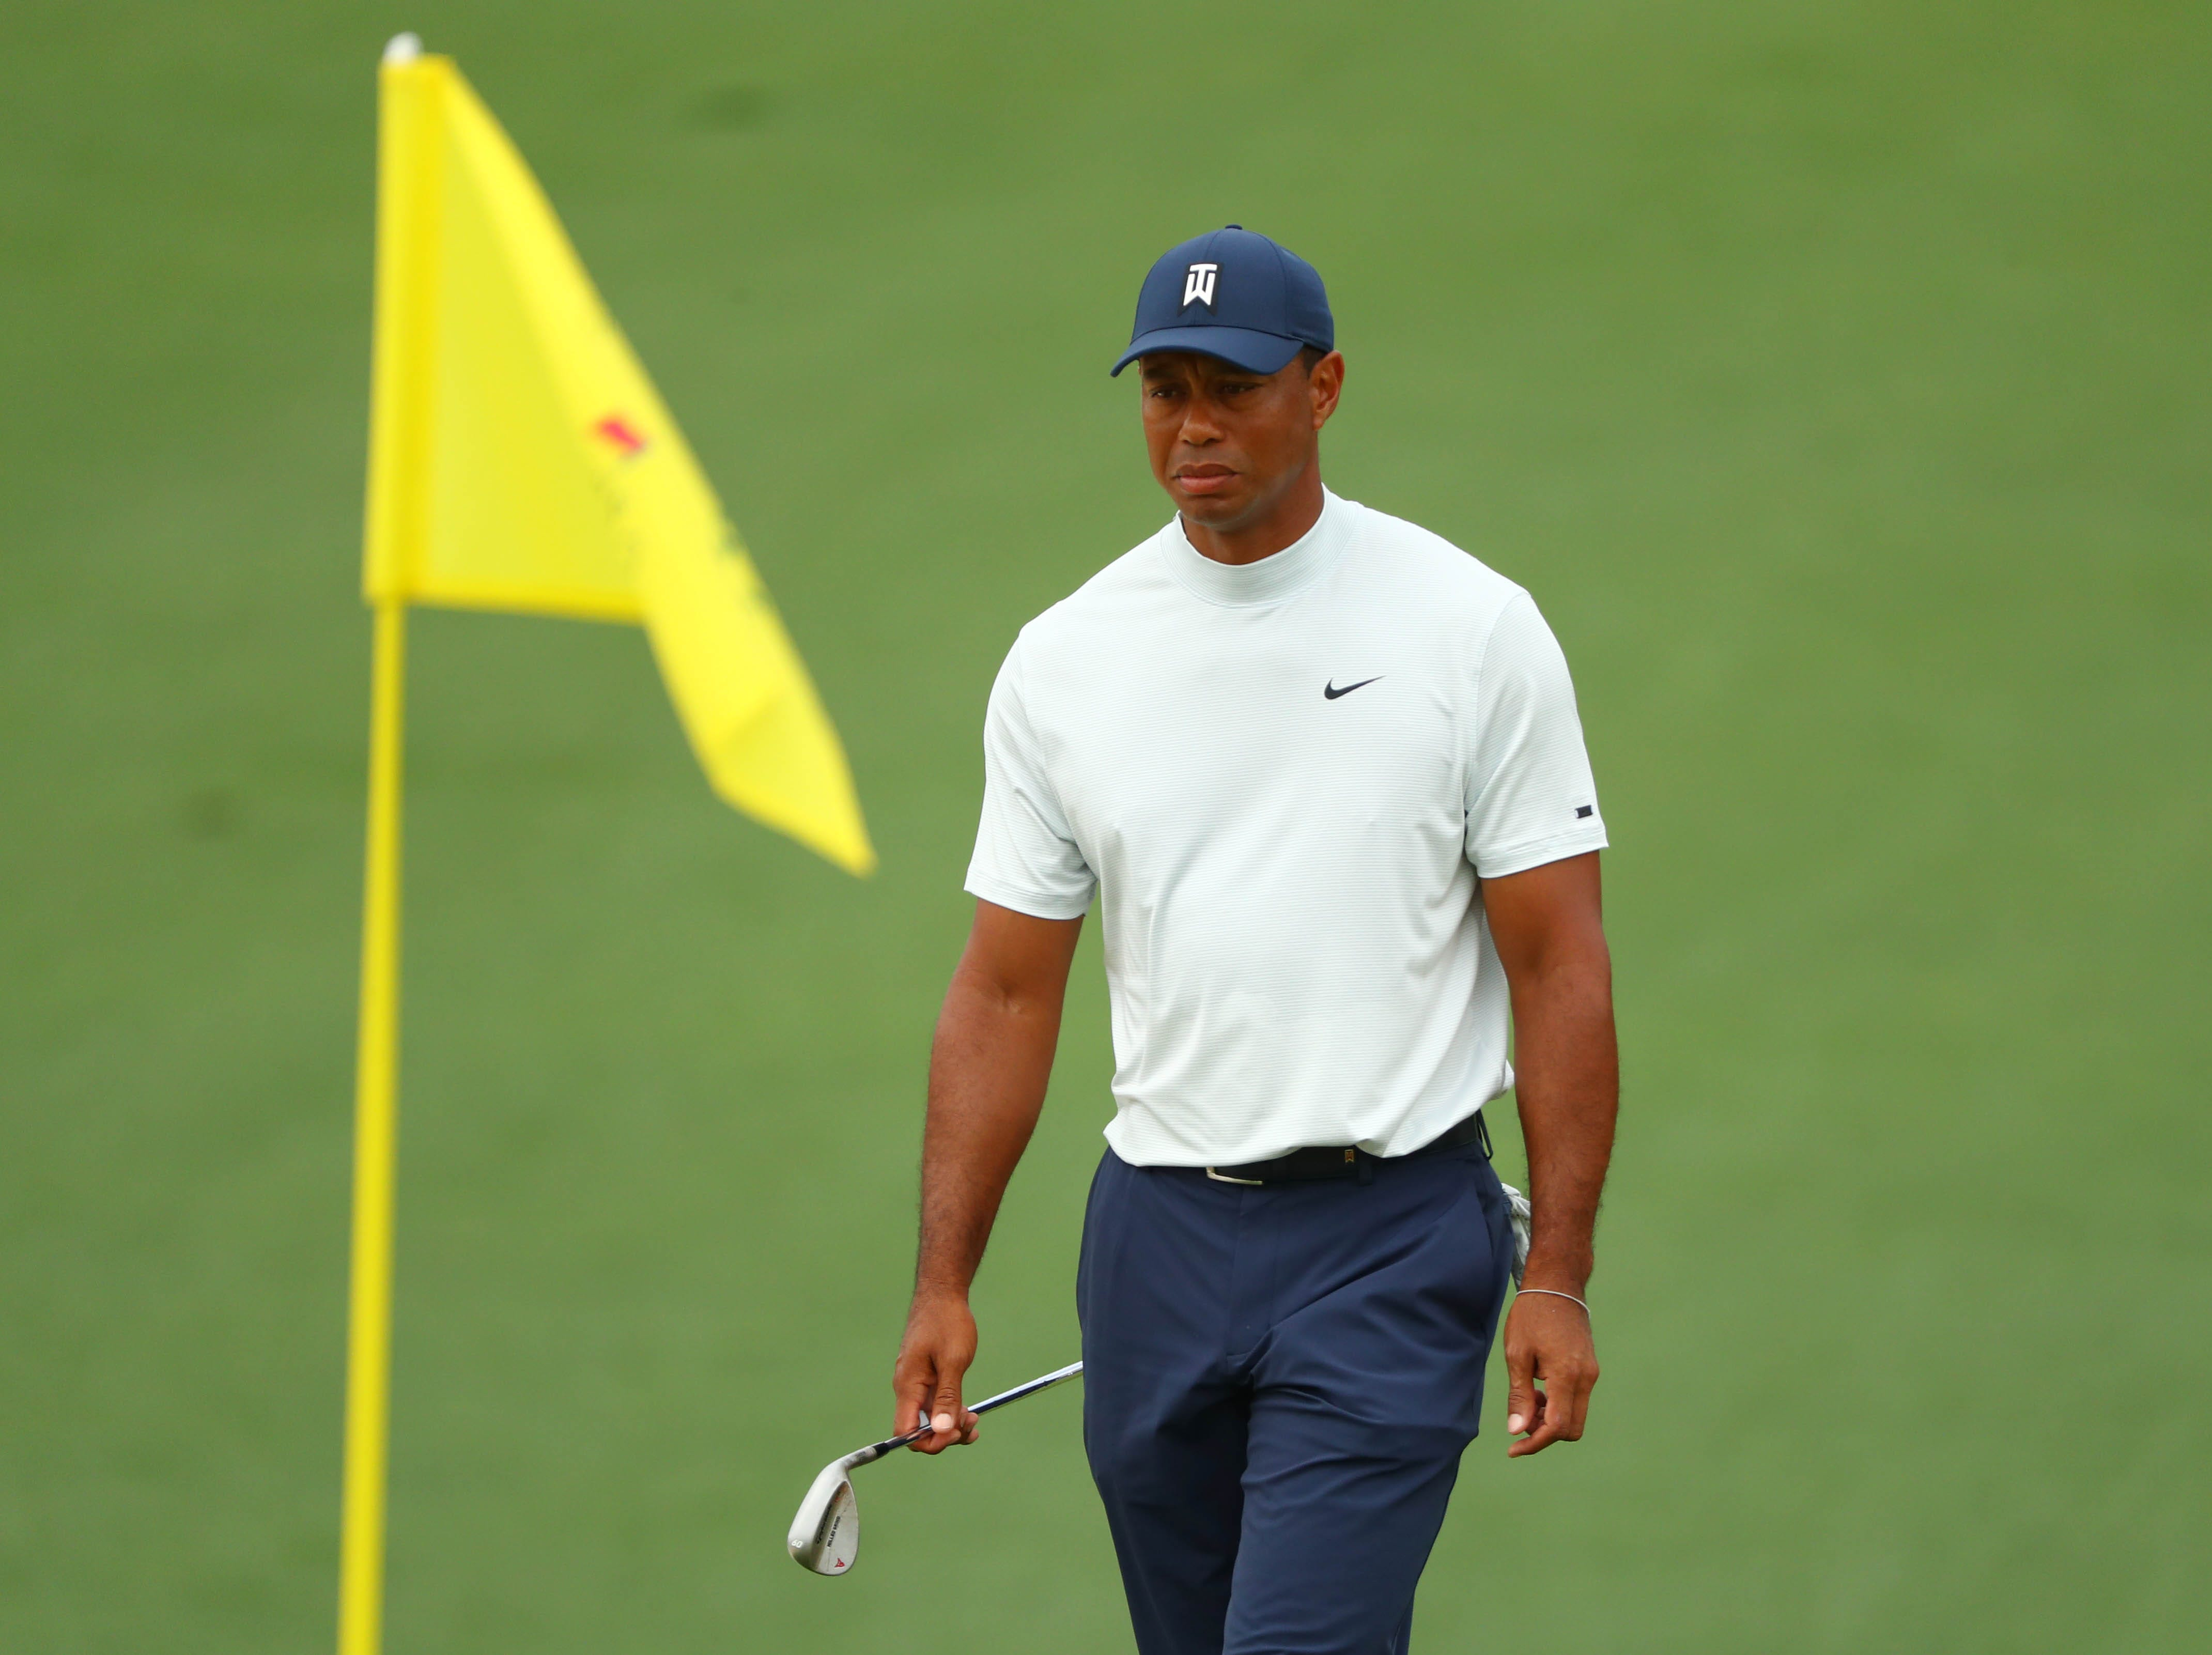 Apr 12, 2019; Augusta, GA, USA; Tiger Woods walks to the 2nd green during the second round of The Masters golf tournament at Augusta National Golf Club. Mandatory Credit: Rob Schumacher-USA TODAY Sports